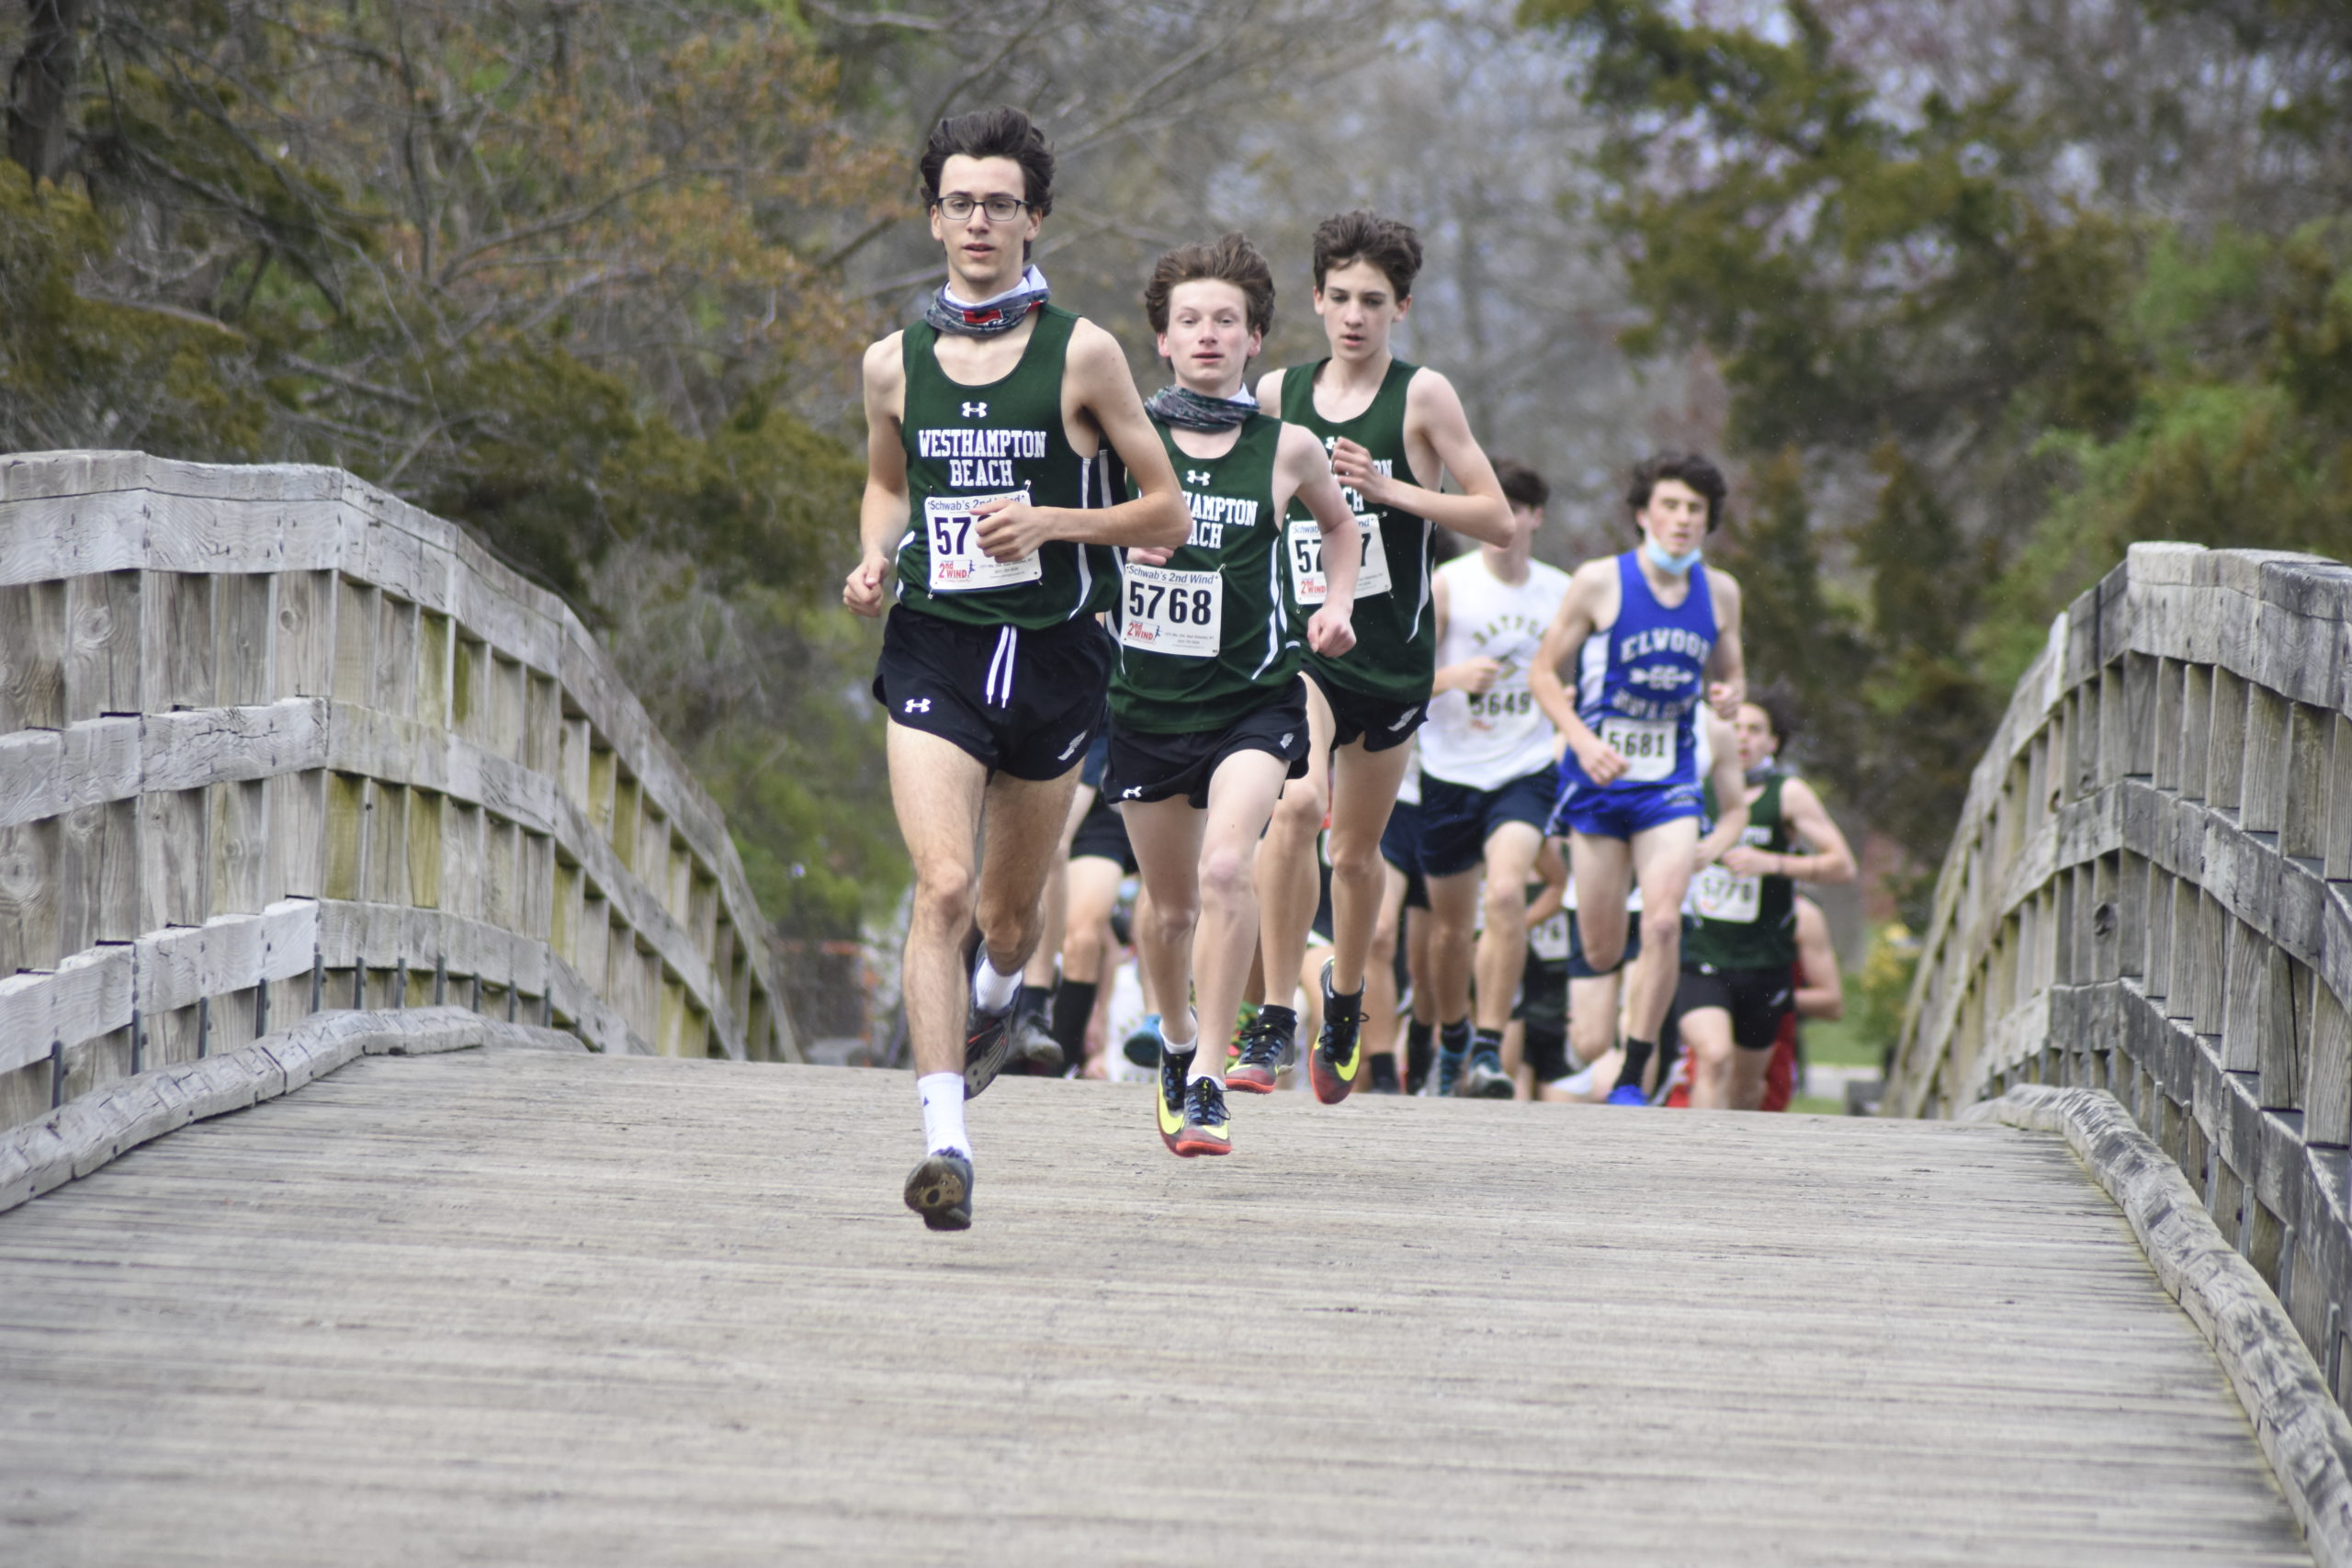 All three Hurricanes, Gavin Ehlers, Max Haynia and Trevor Hayes, were All-County this past all. Ehlers was Class B county champ.